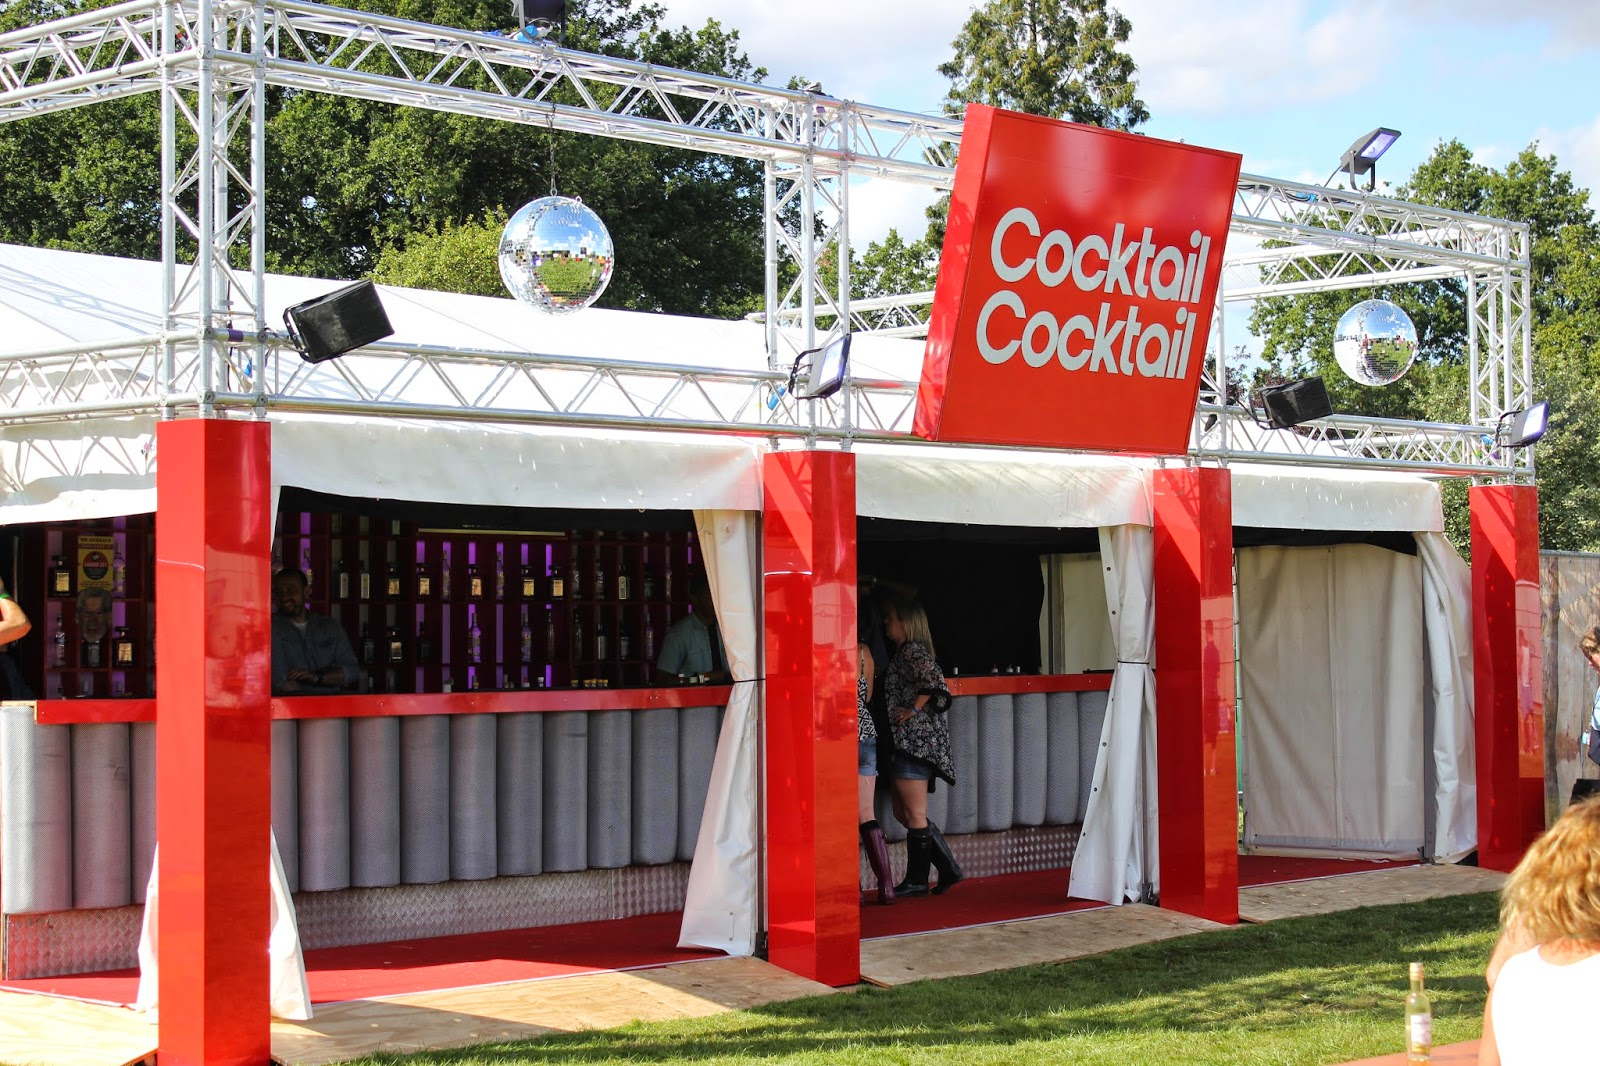 Cocktail cocktail v festival